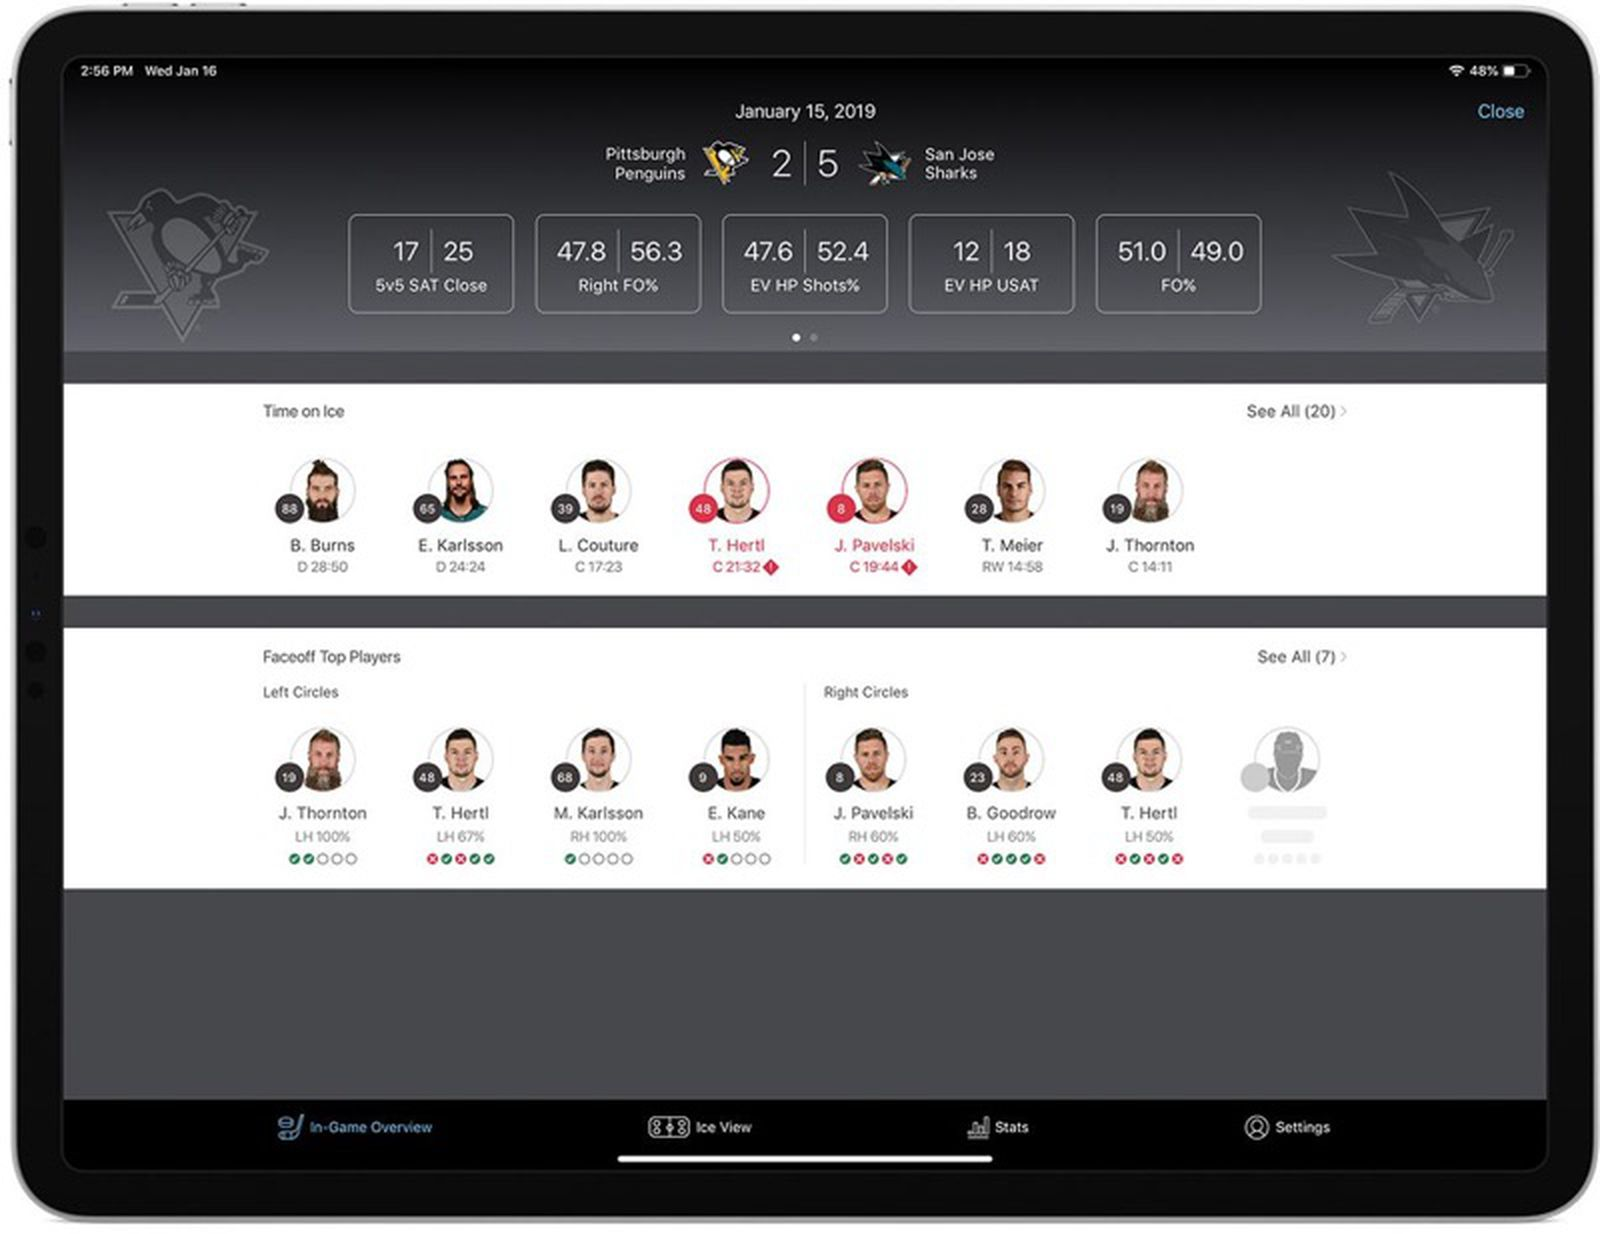 New Nhl Ipad App Offers Coaches Access To 60 Real Time Individual And Team Statistics Macrumors